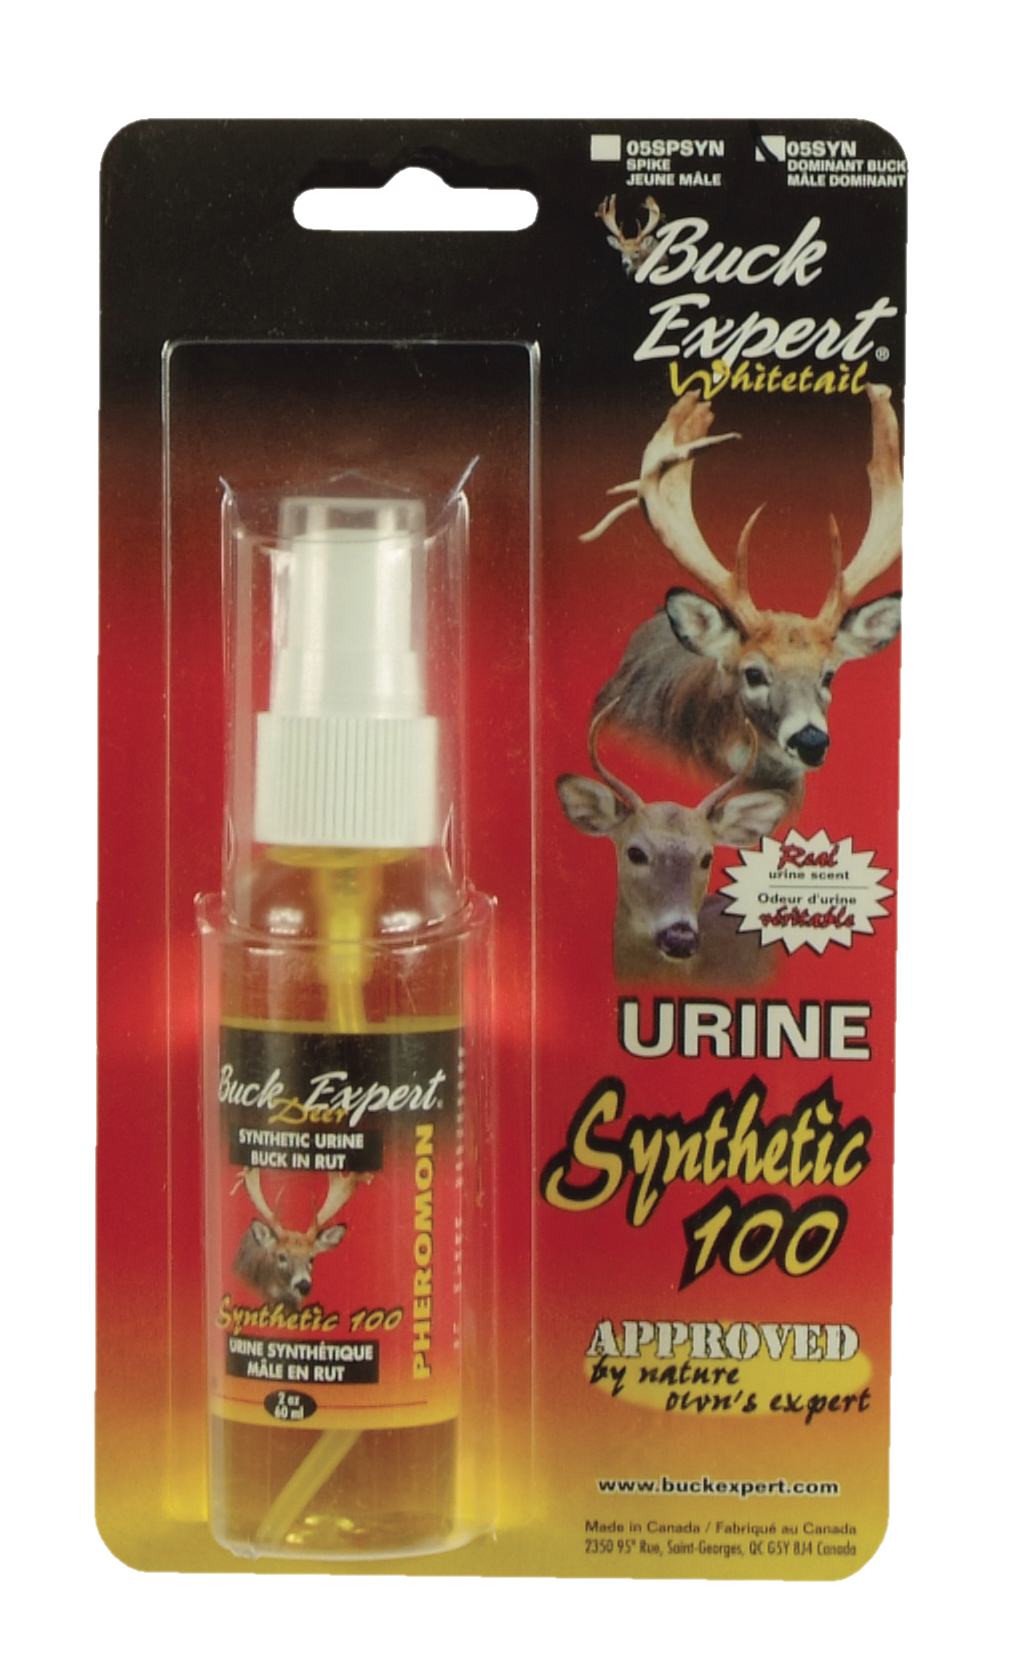 WHITETAIL SYNTHETIC DOMINANT BUCK URINE